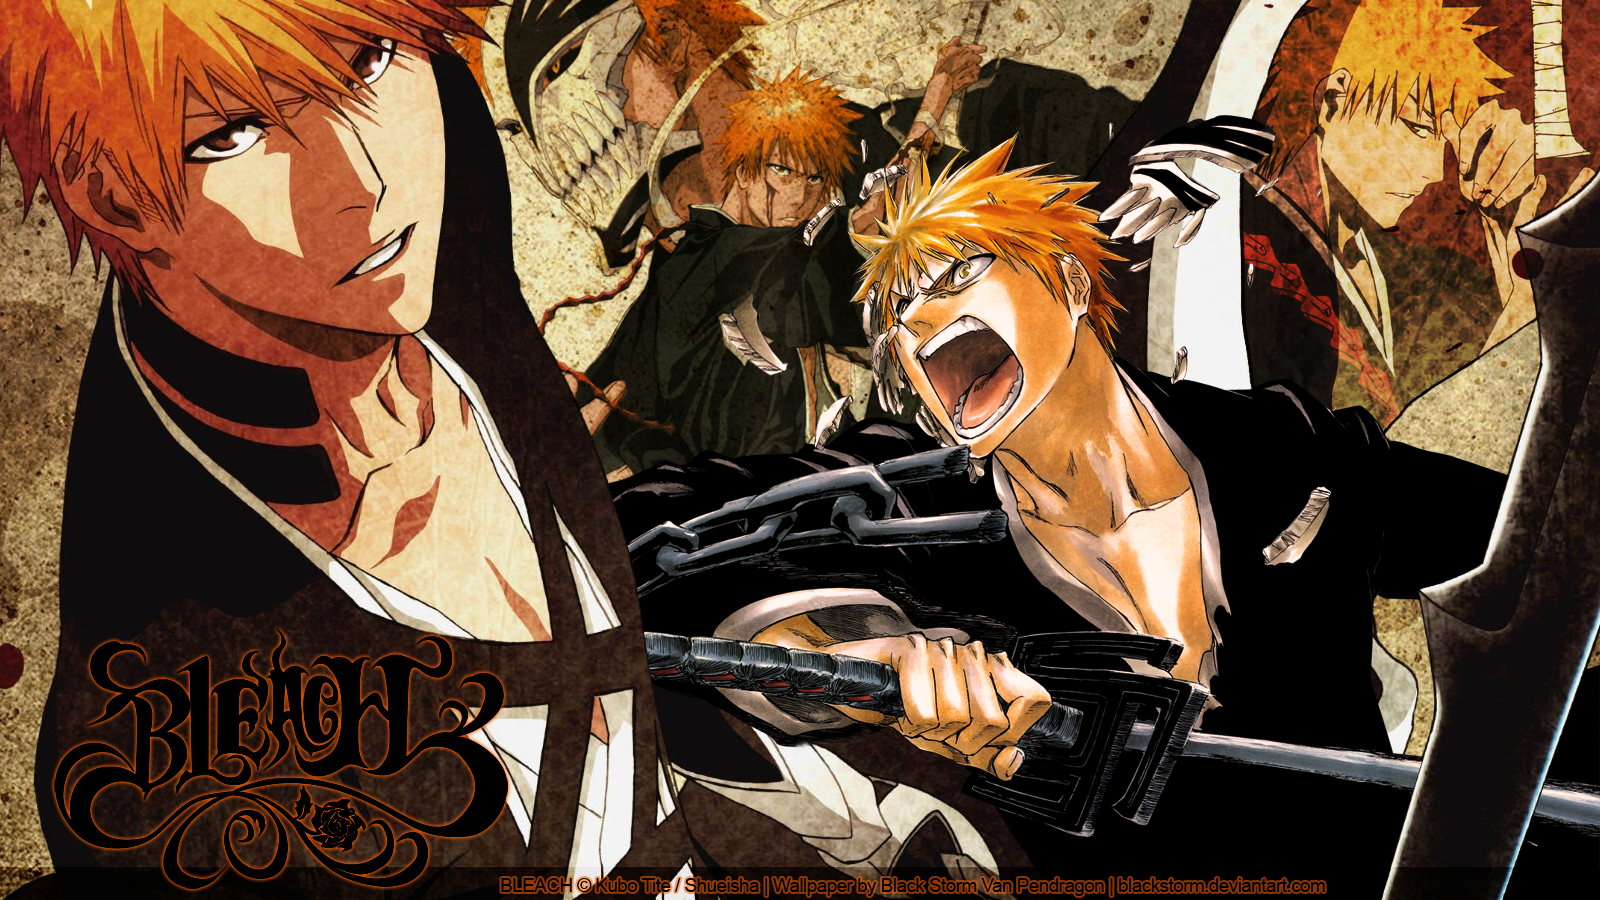 Ichigo Bleach Wallpaper